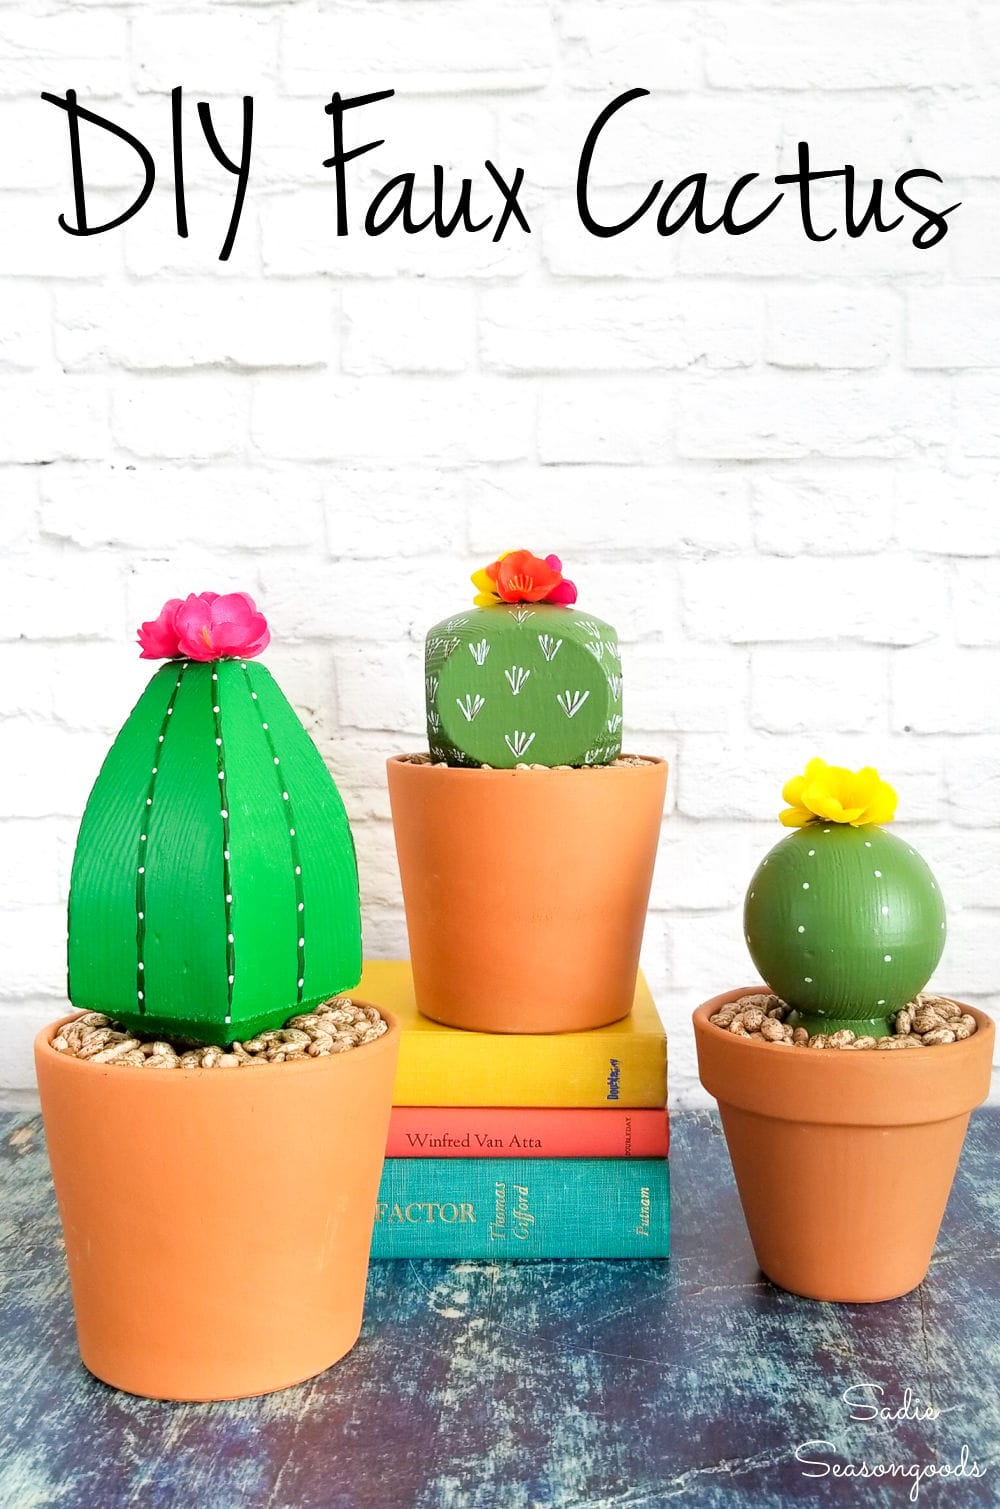 Upcycling wooden post caps as DIY cactus decor